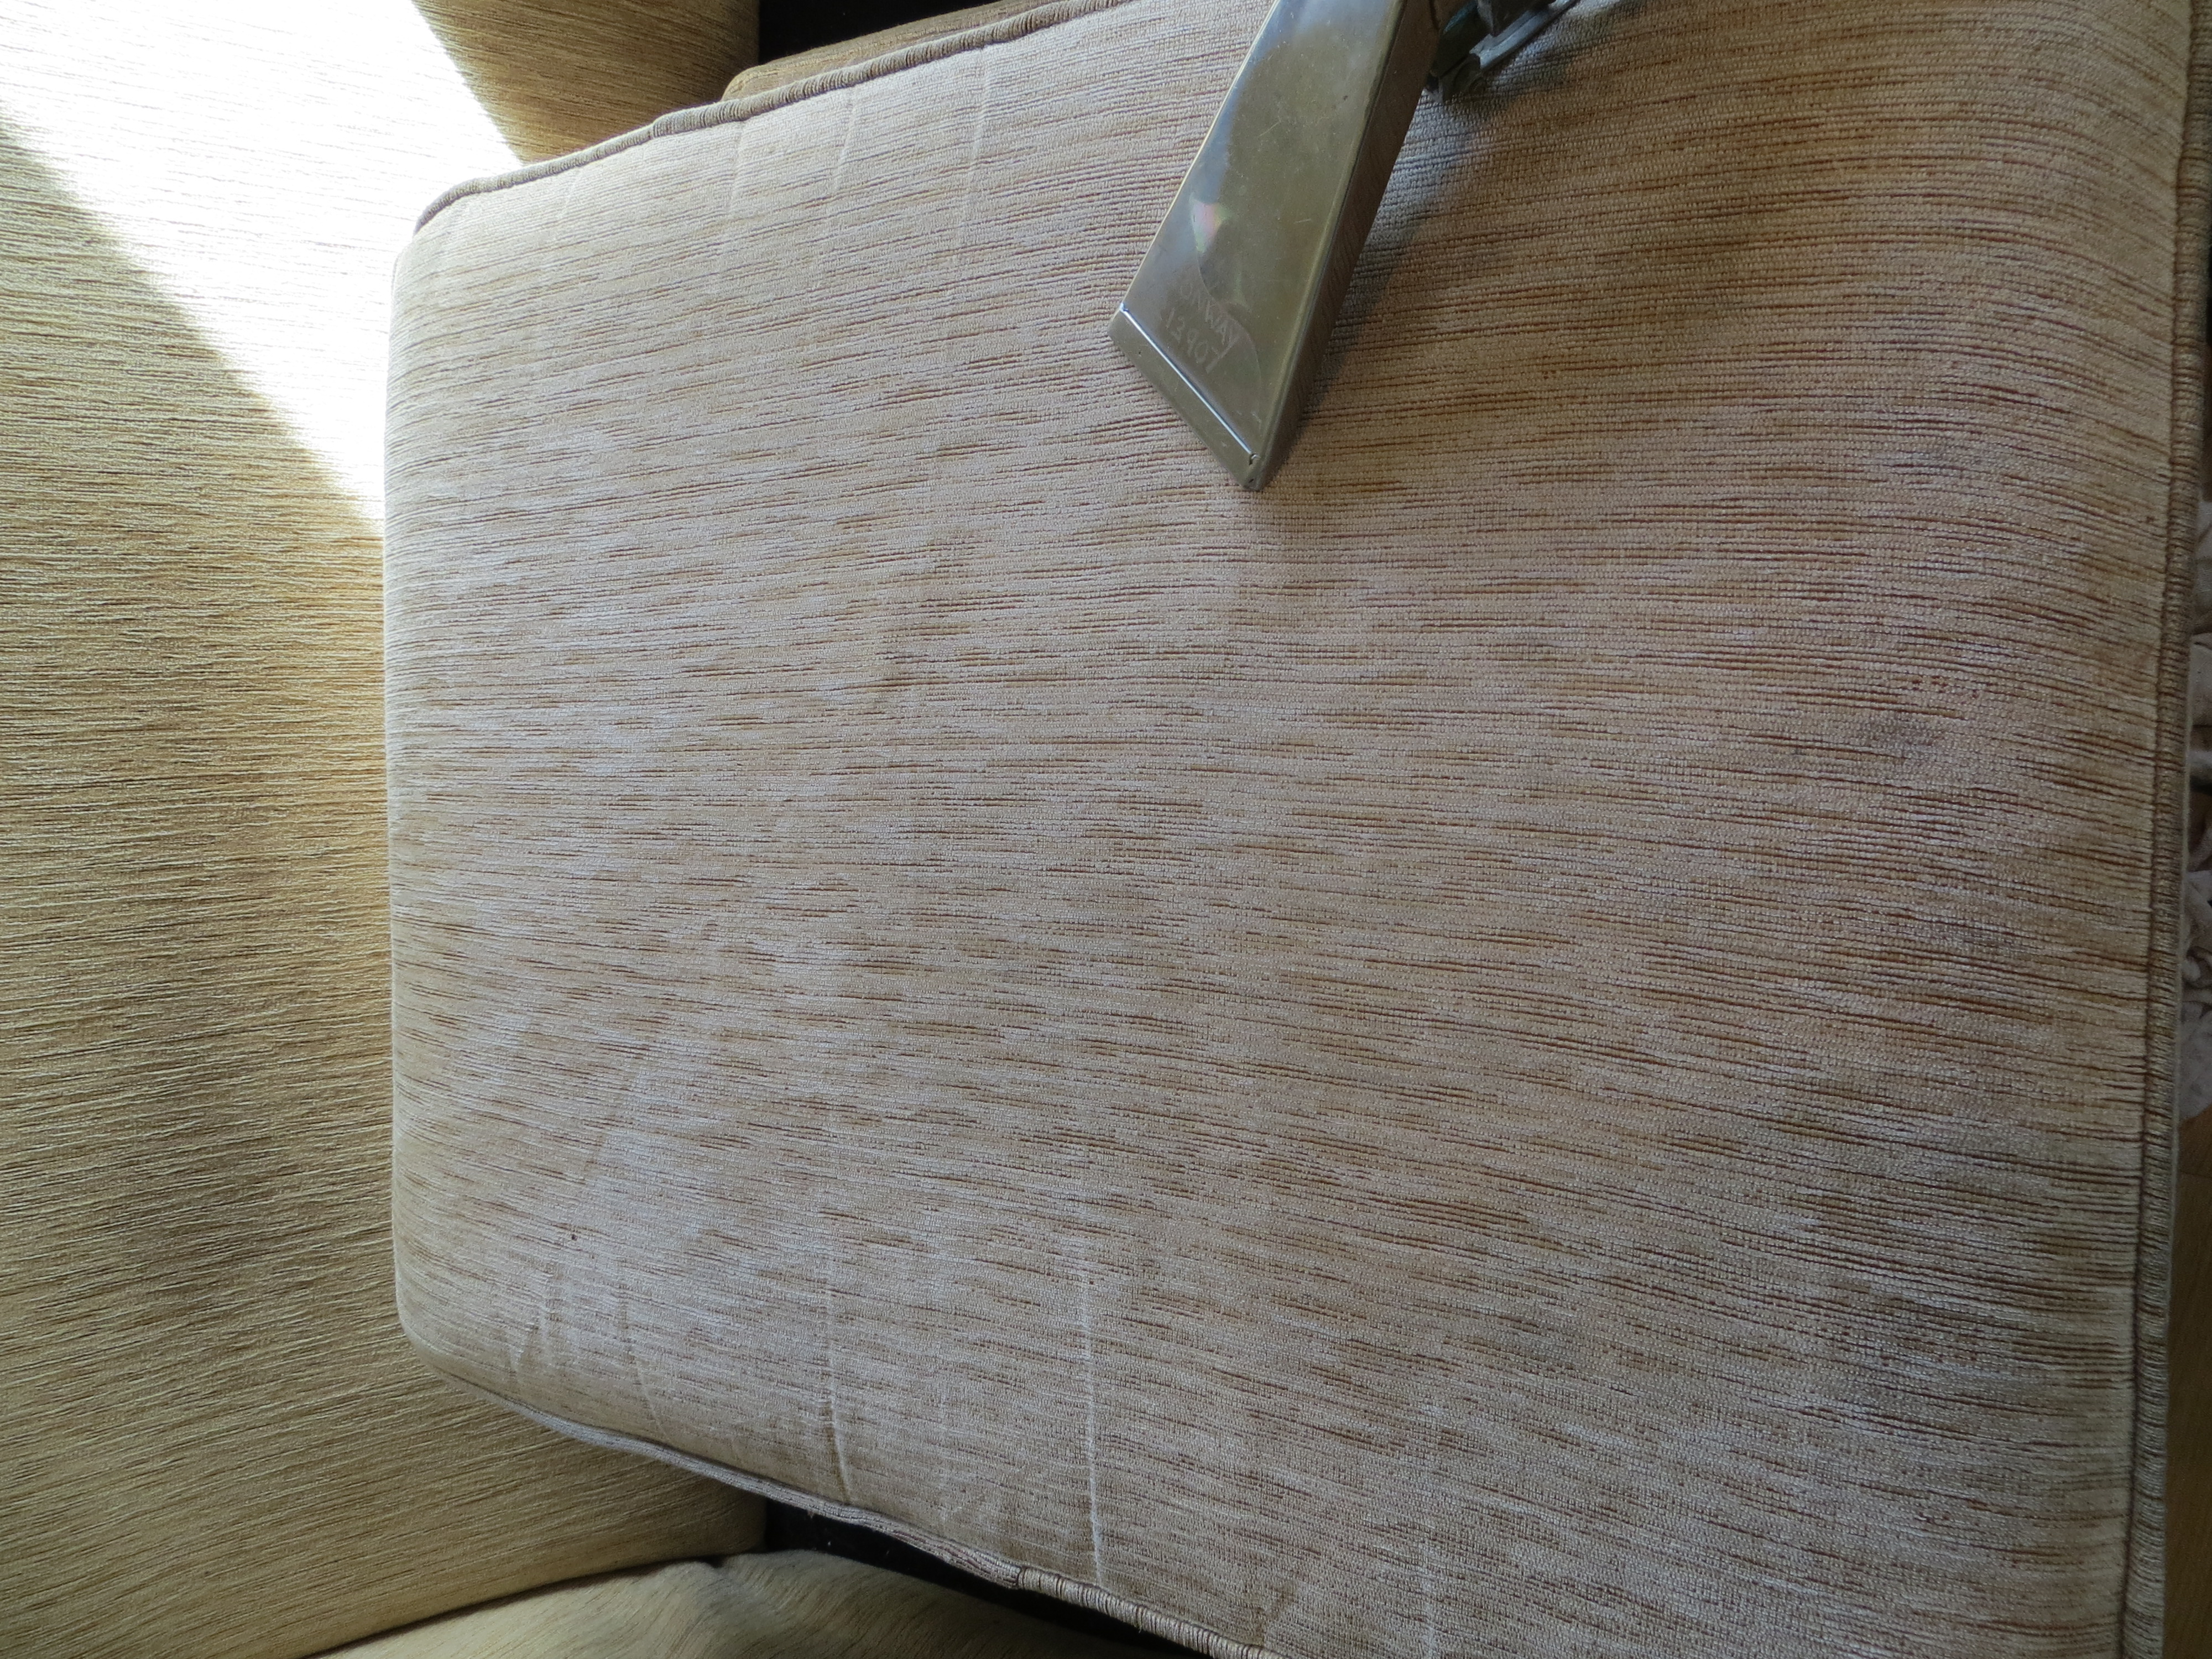 Cushion Dirty Clean Upholstery Cleaning Chair